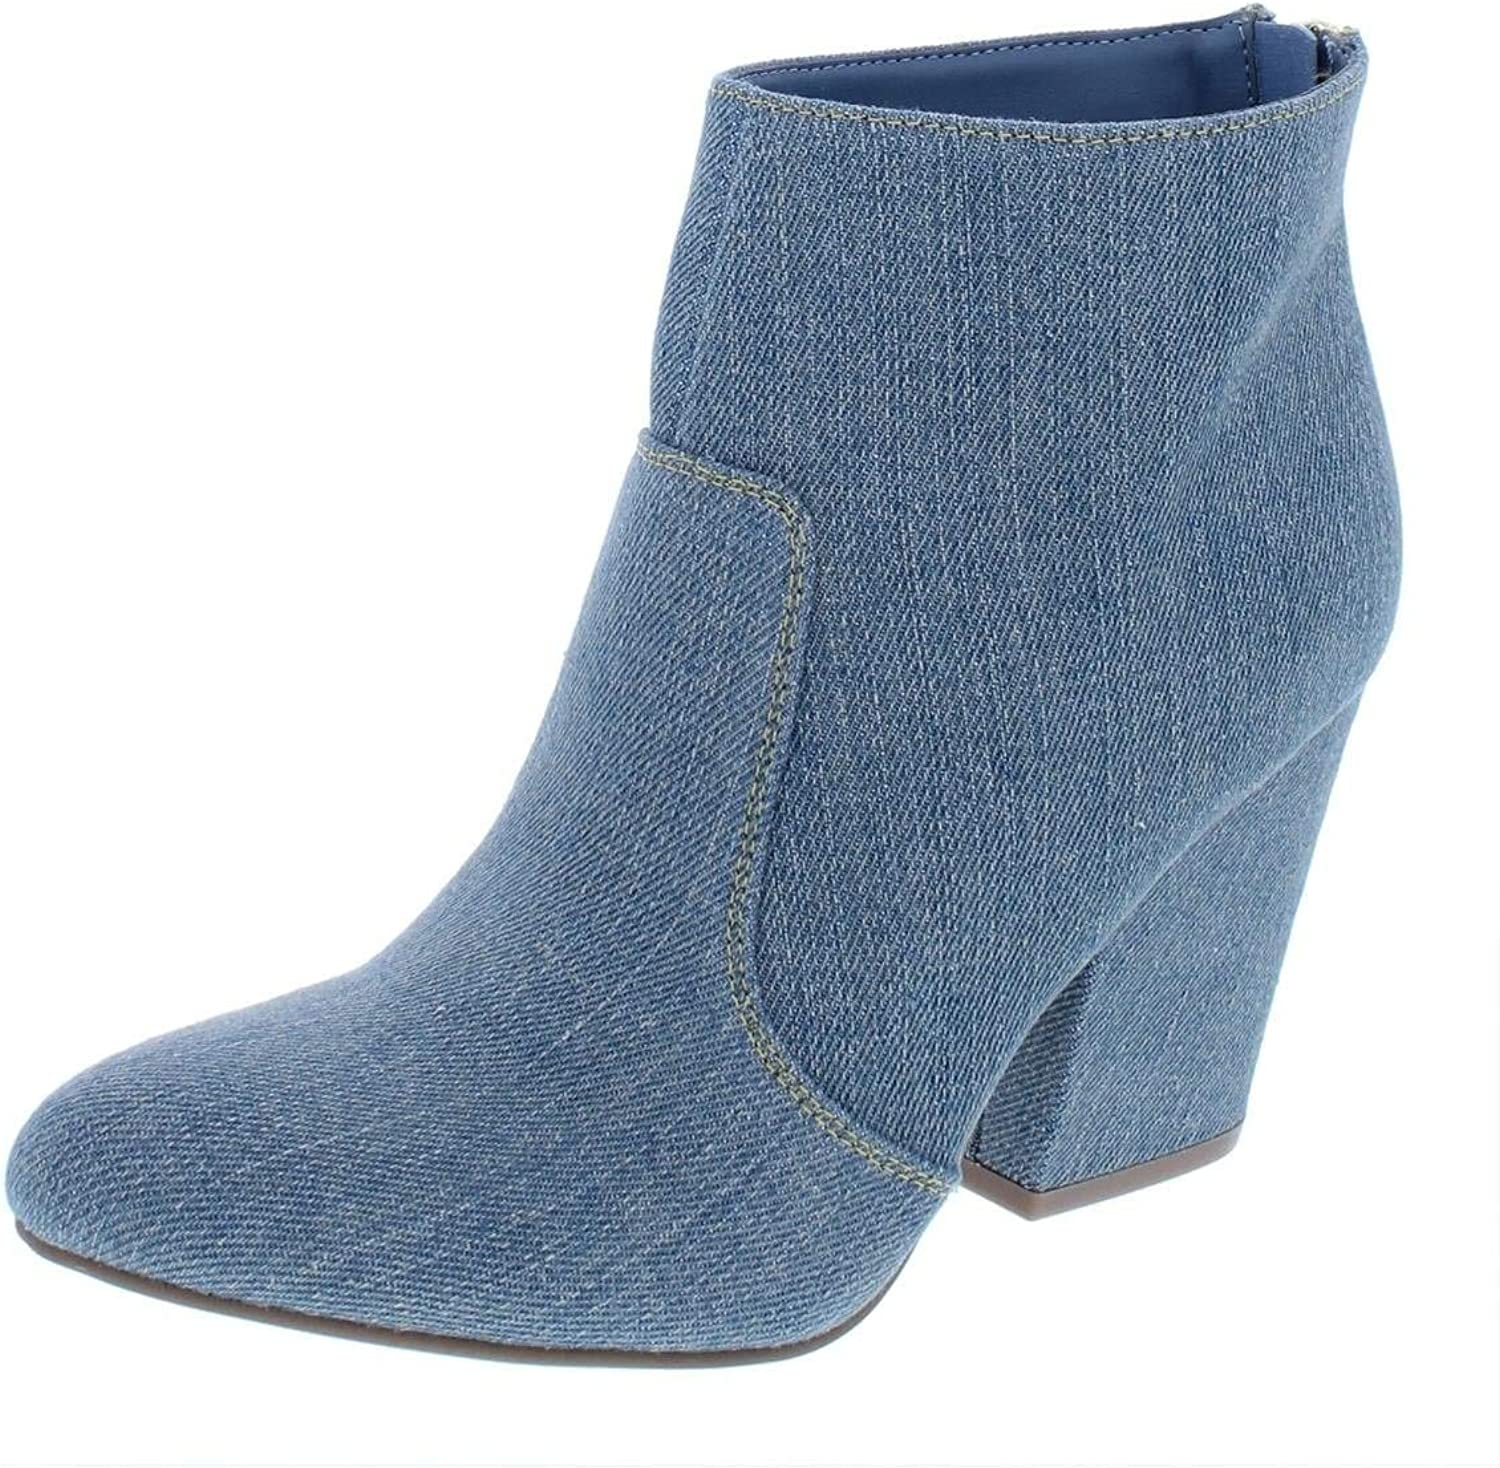 G By Guess Womens Nite 2 Closed Toe Ankle Fashion Boots